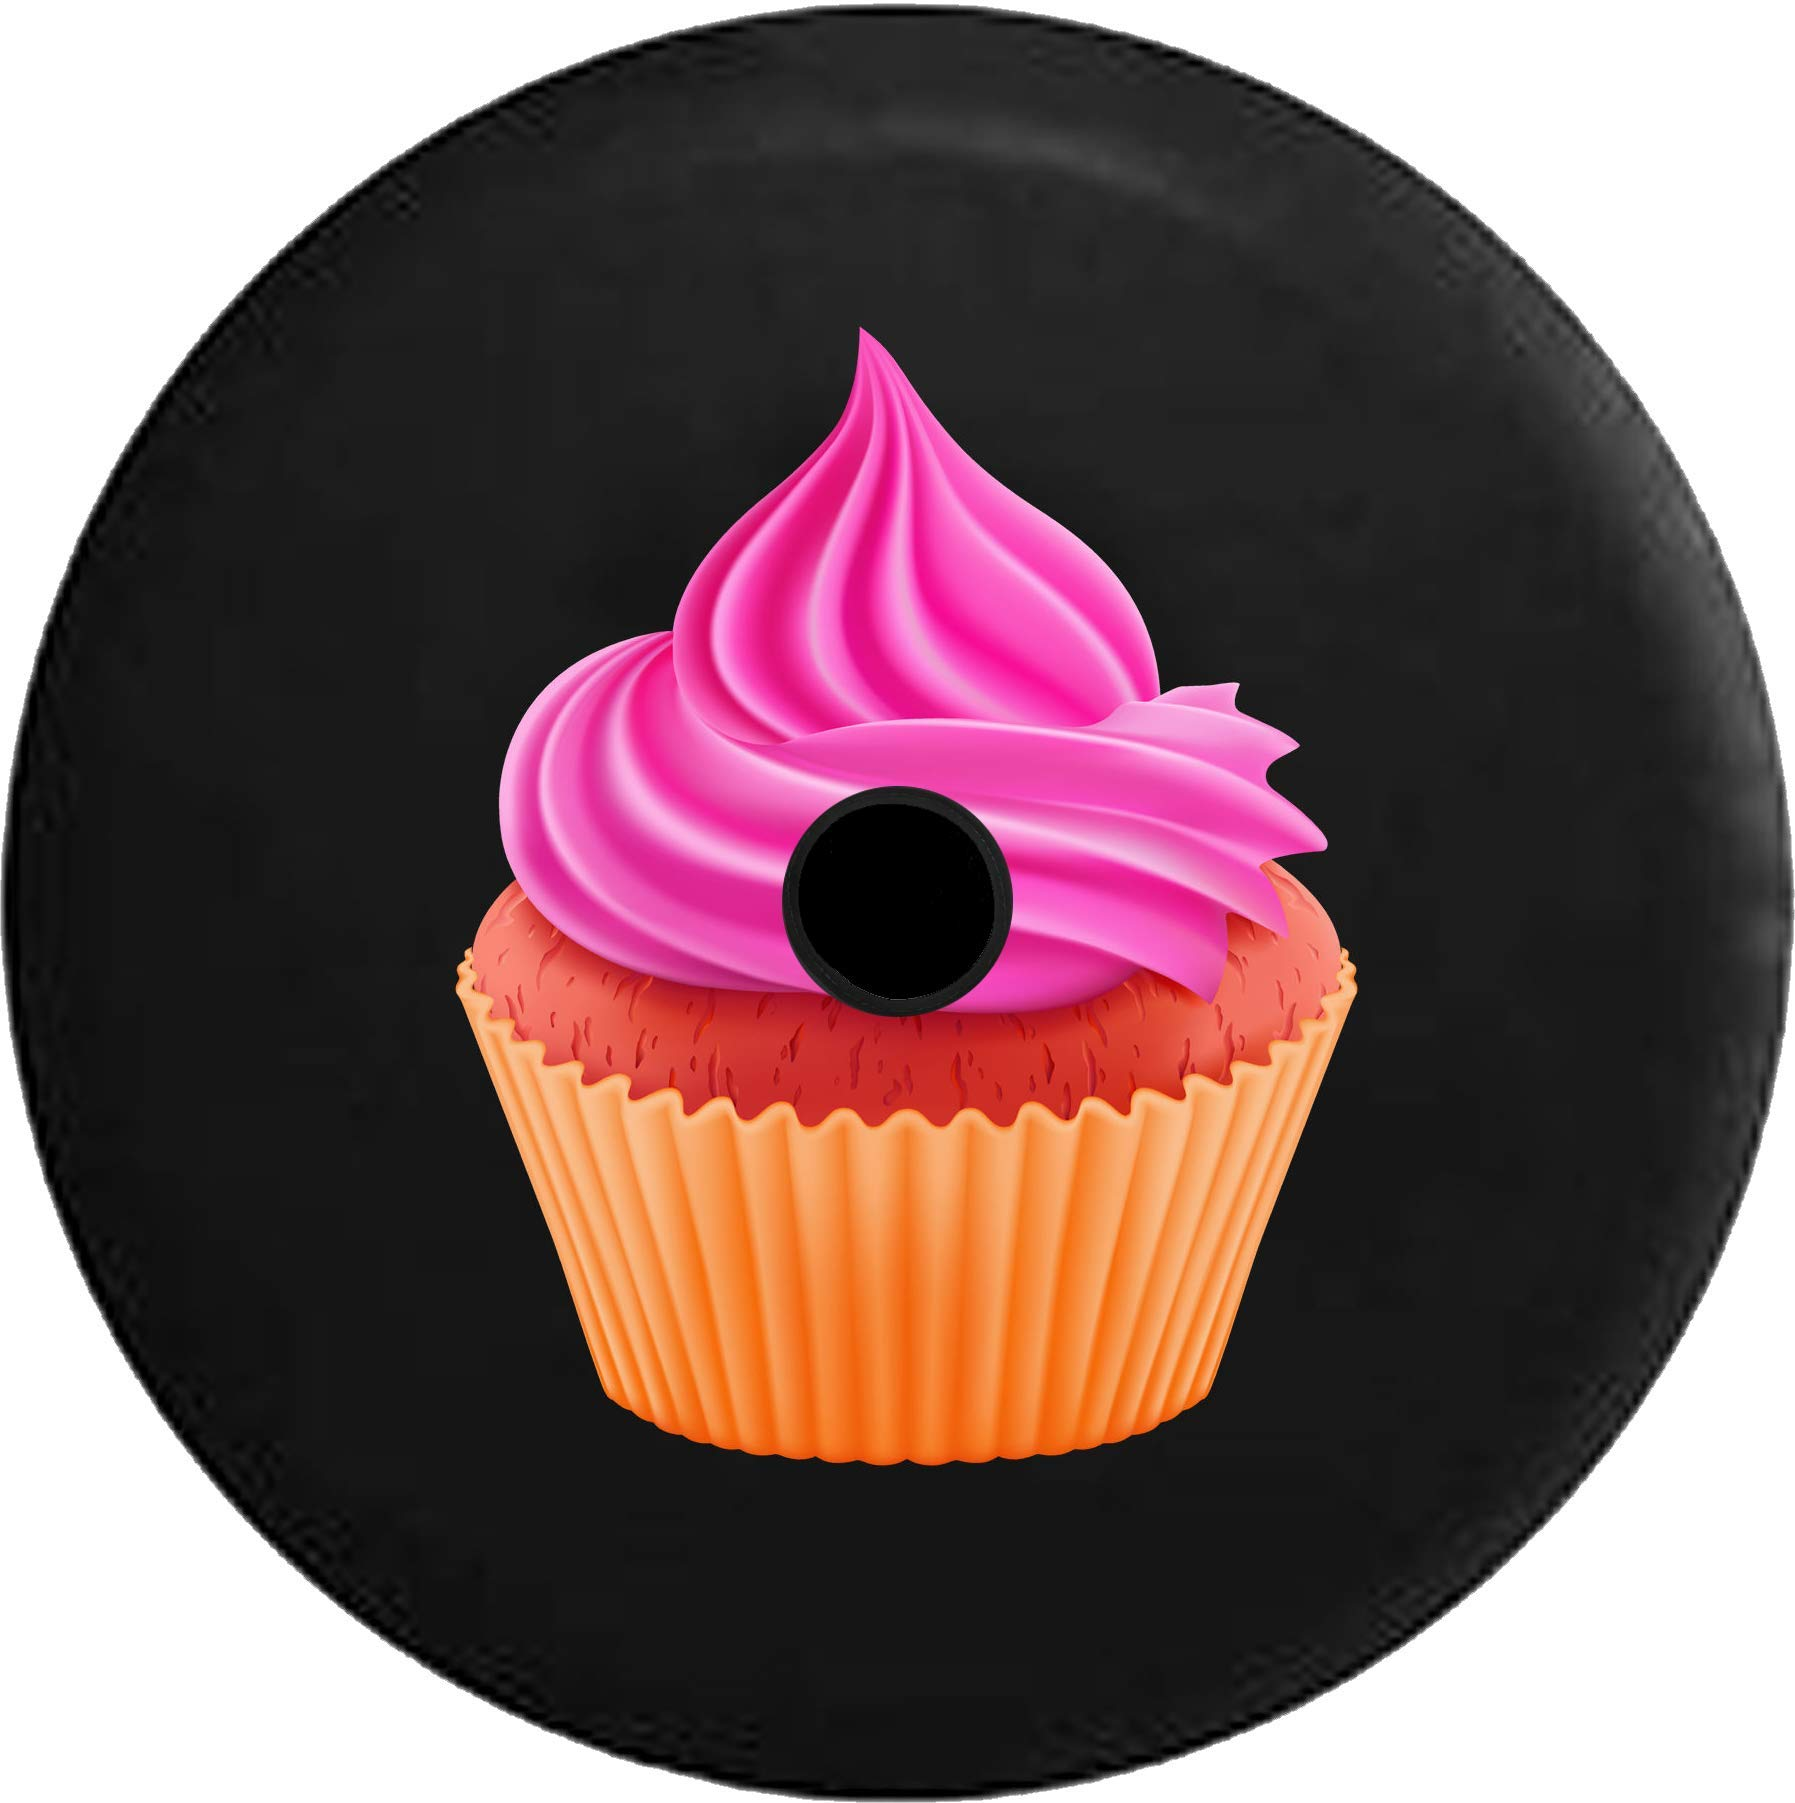 JL Spare Tire Cover Frosted Red Velvet Cupcake Frosting - Dessert with Backup Camera Hole Black 33 in by Steelcut